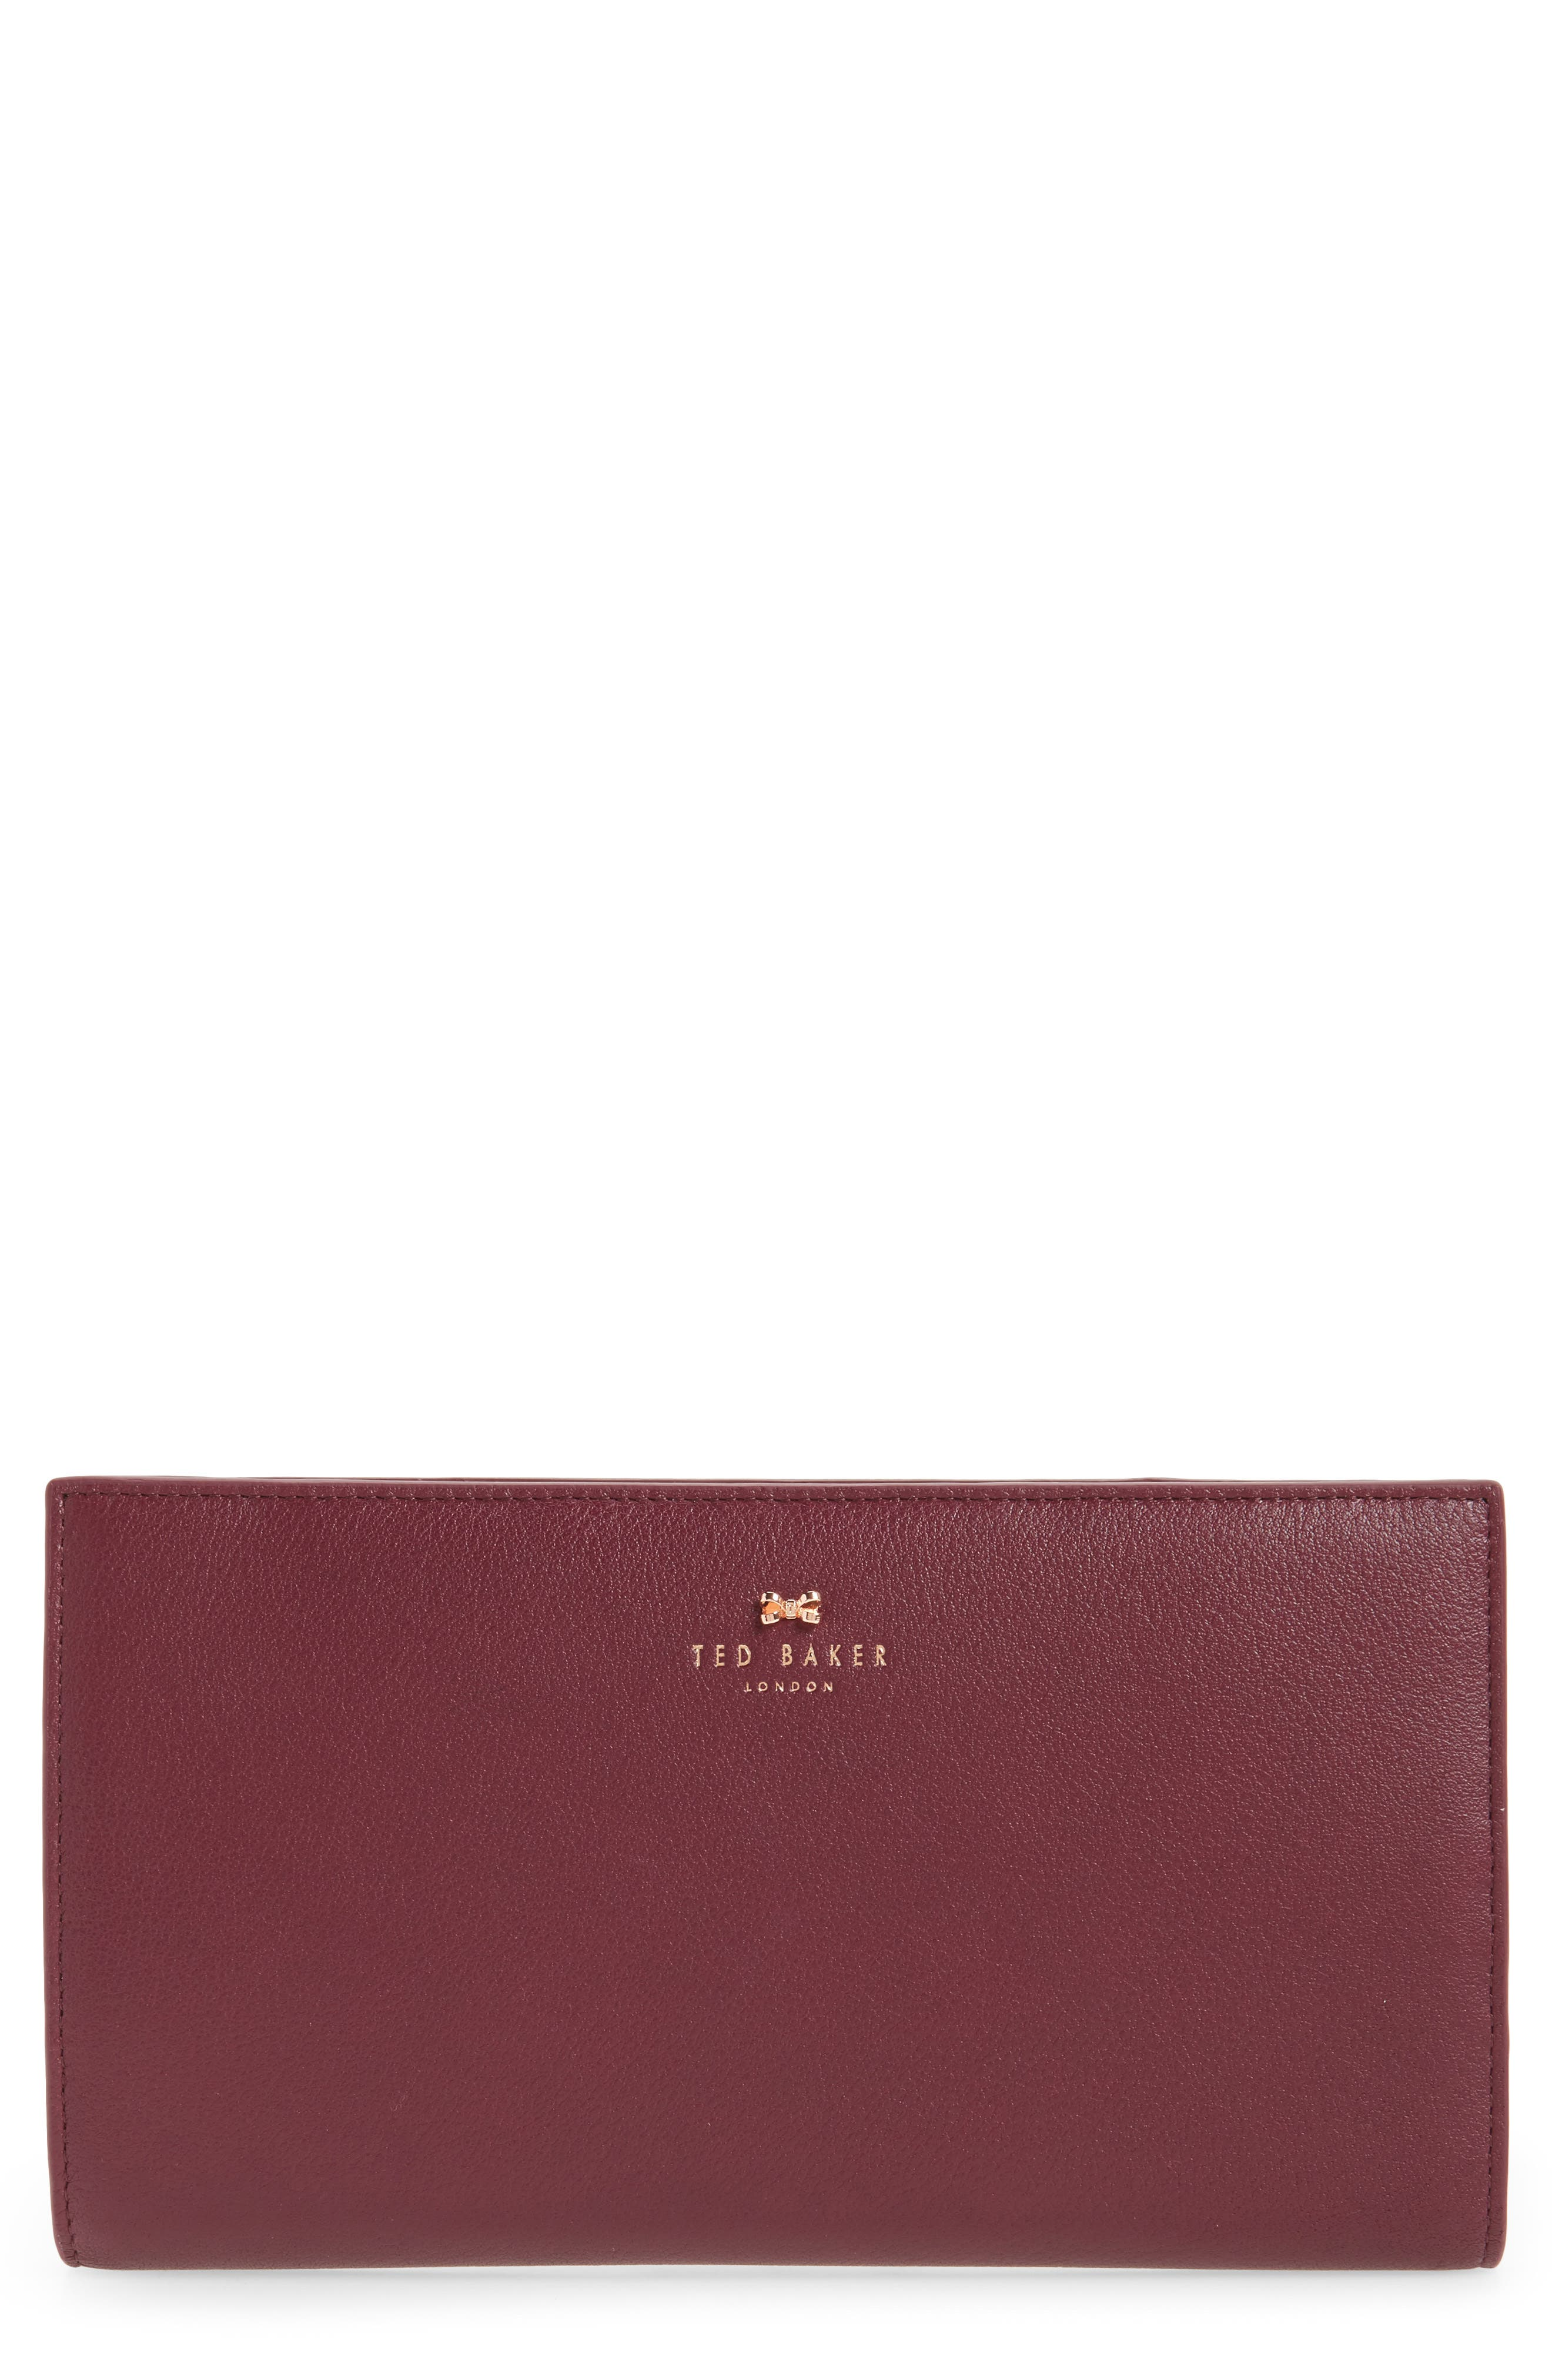 Dolle Leather Travel Wallet,                         Main,                         color, Oxblood